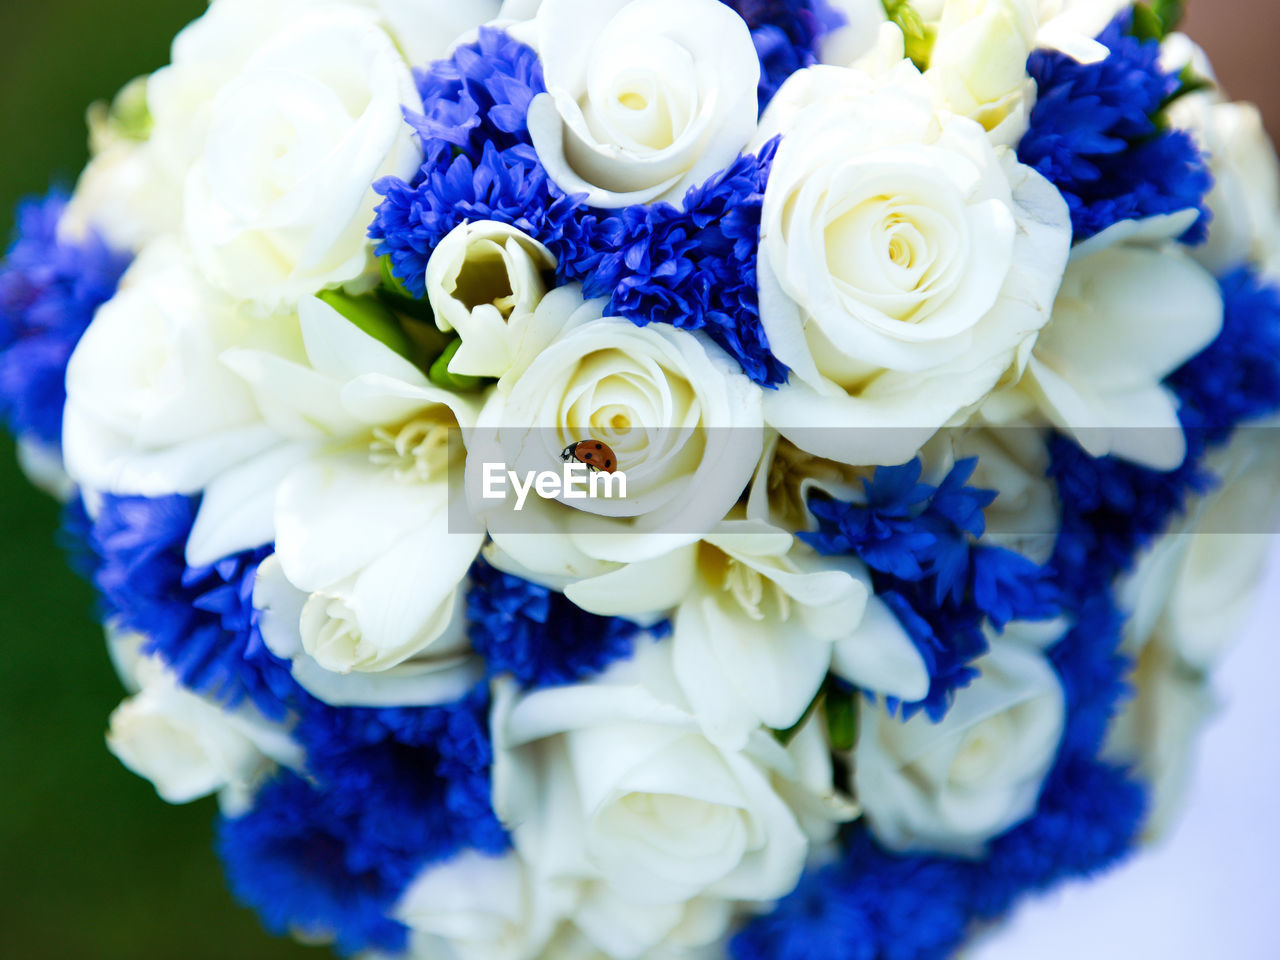 flower, wedding, bouquet, beauty in nature, rose - flower, petal, flower head, blue, fragility, white color, freshness, celebration, purple, close-up, bride, hyacinth, nature, indoors, life events, wedding dress, day